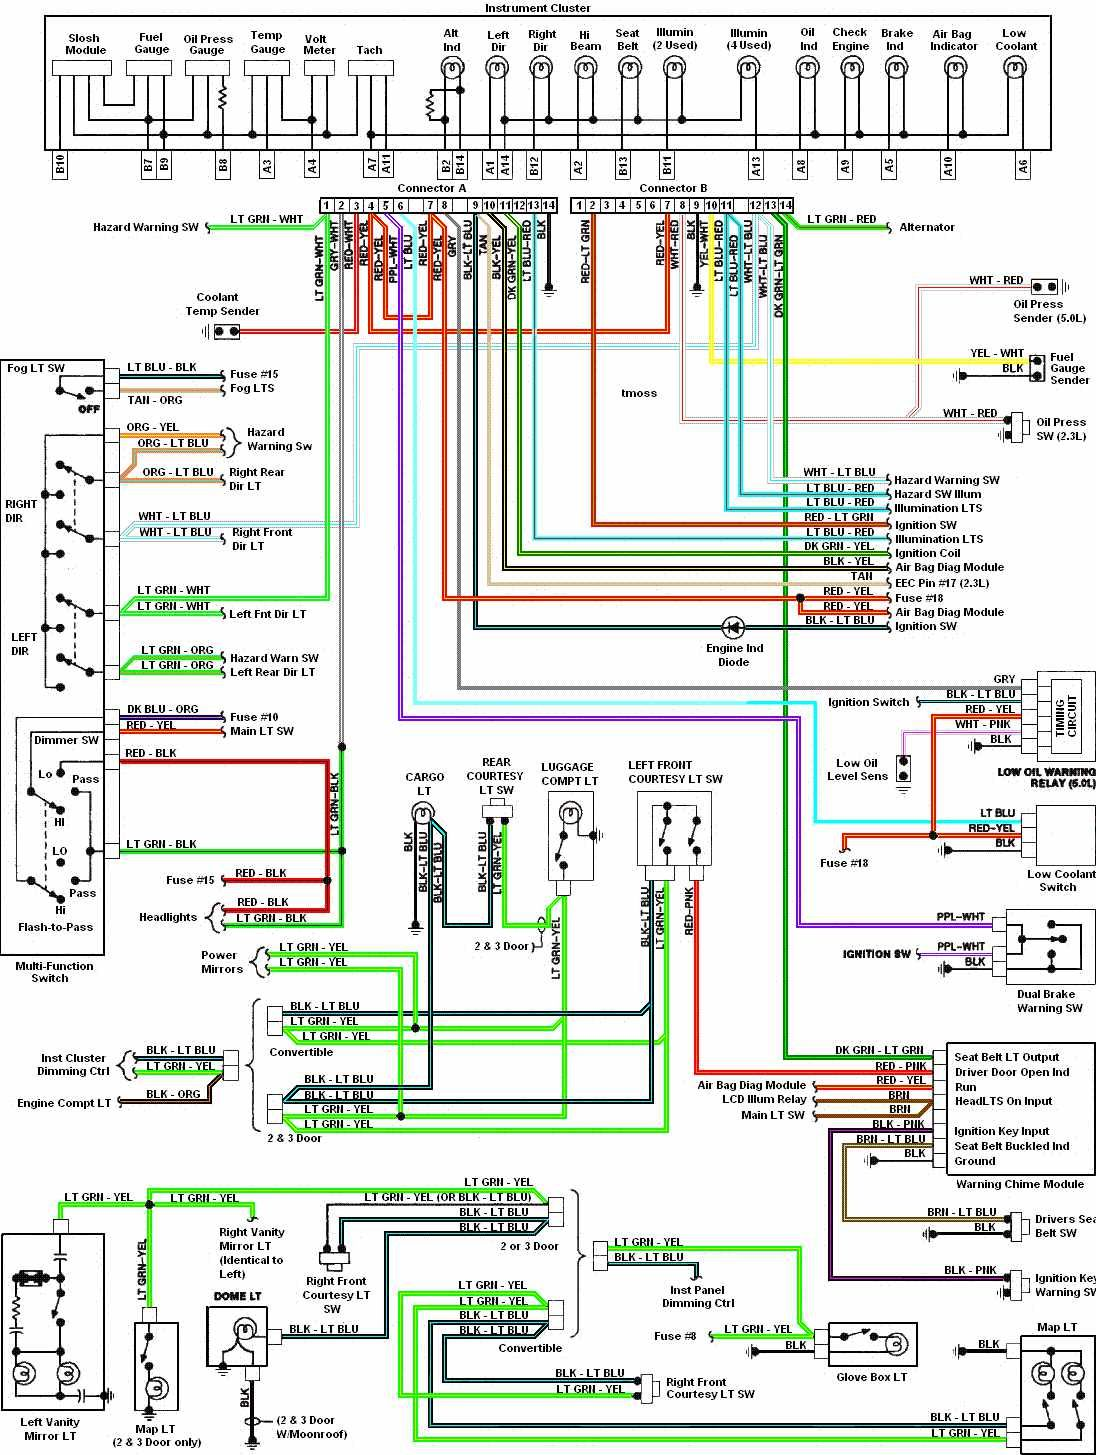 2014 Mustang Wiring Diagram - Wiring Diagram Replace range-notice -  range-notice.miramontiseo.it | 2014 Mustang Wiring Diagram |  | miramontiseo.it